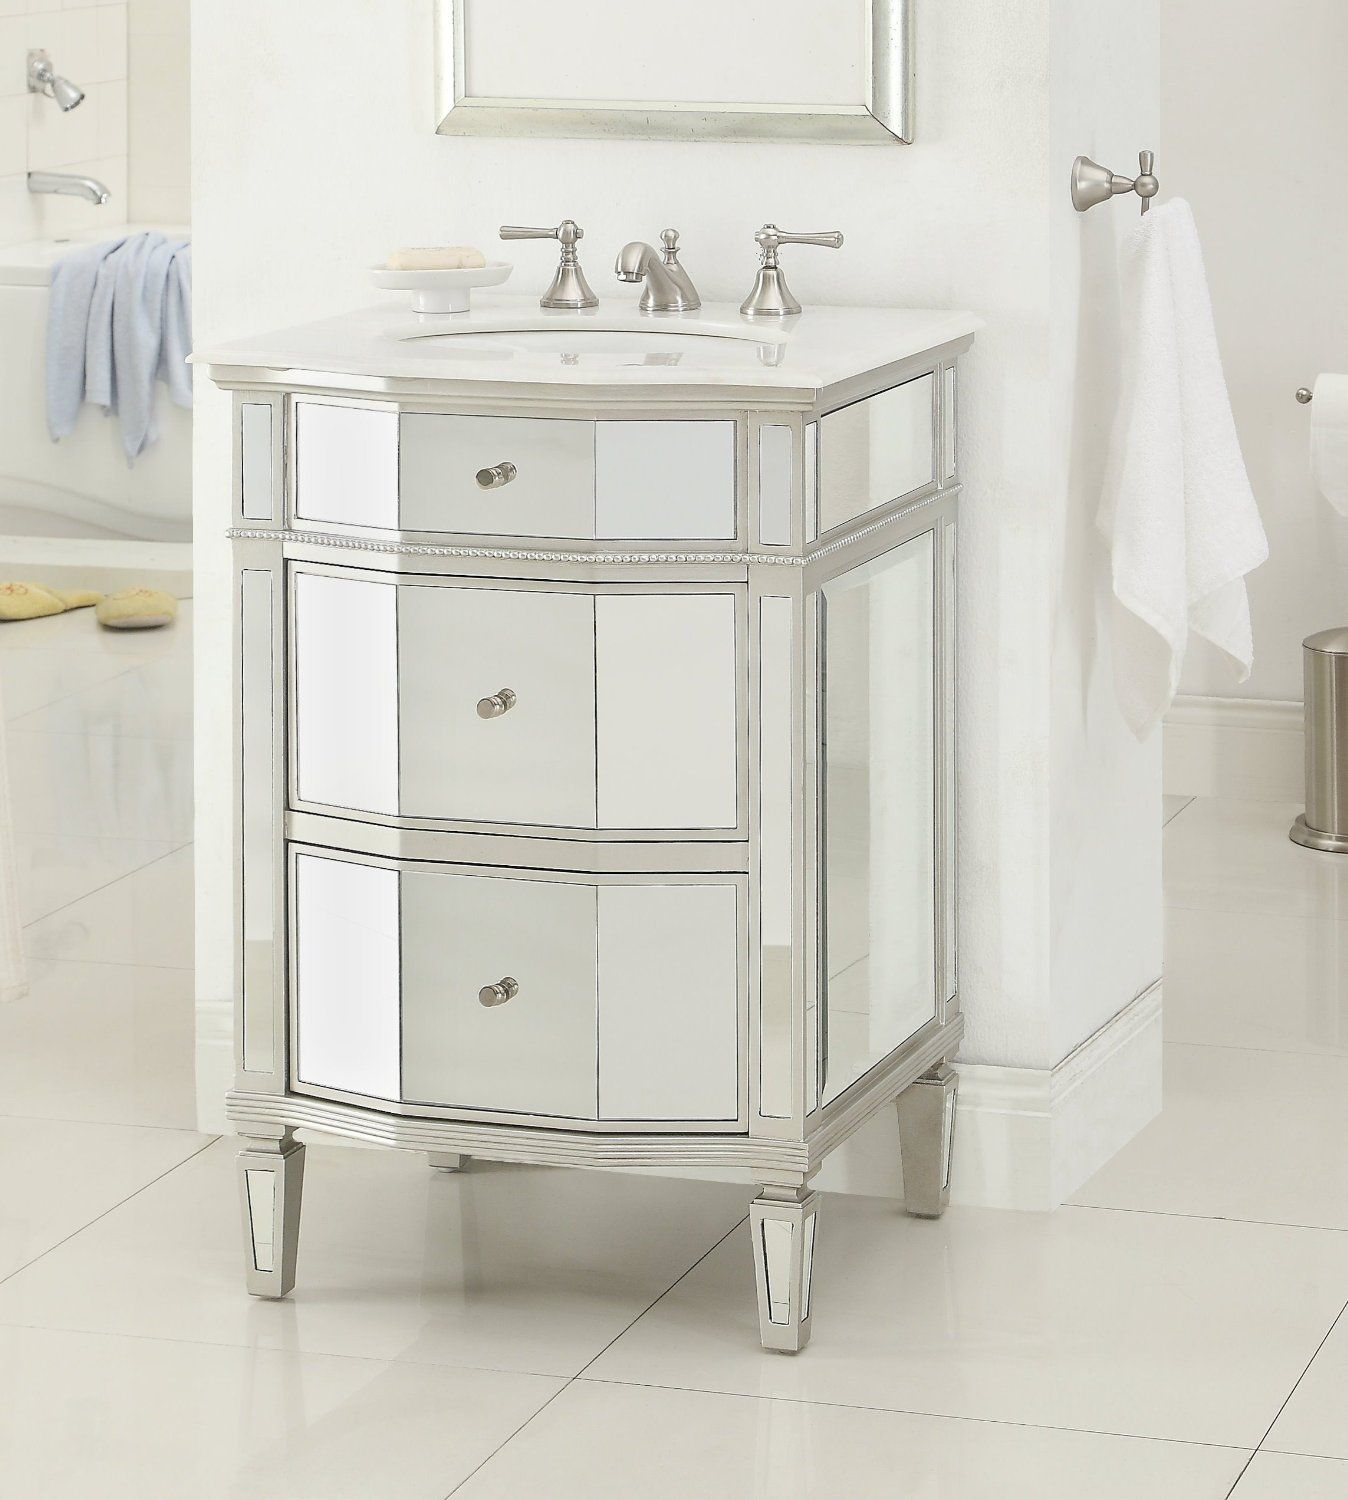 Bathroom sink cabinets white - Adelina 24 Inch Mirrored Bathroom Vanity Imperial White Marble Counter Top White Under Mount